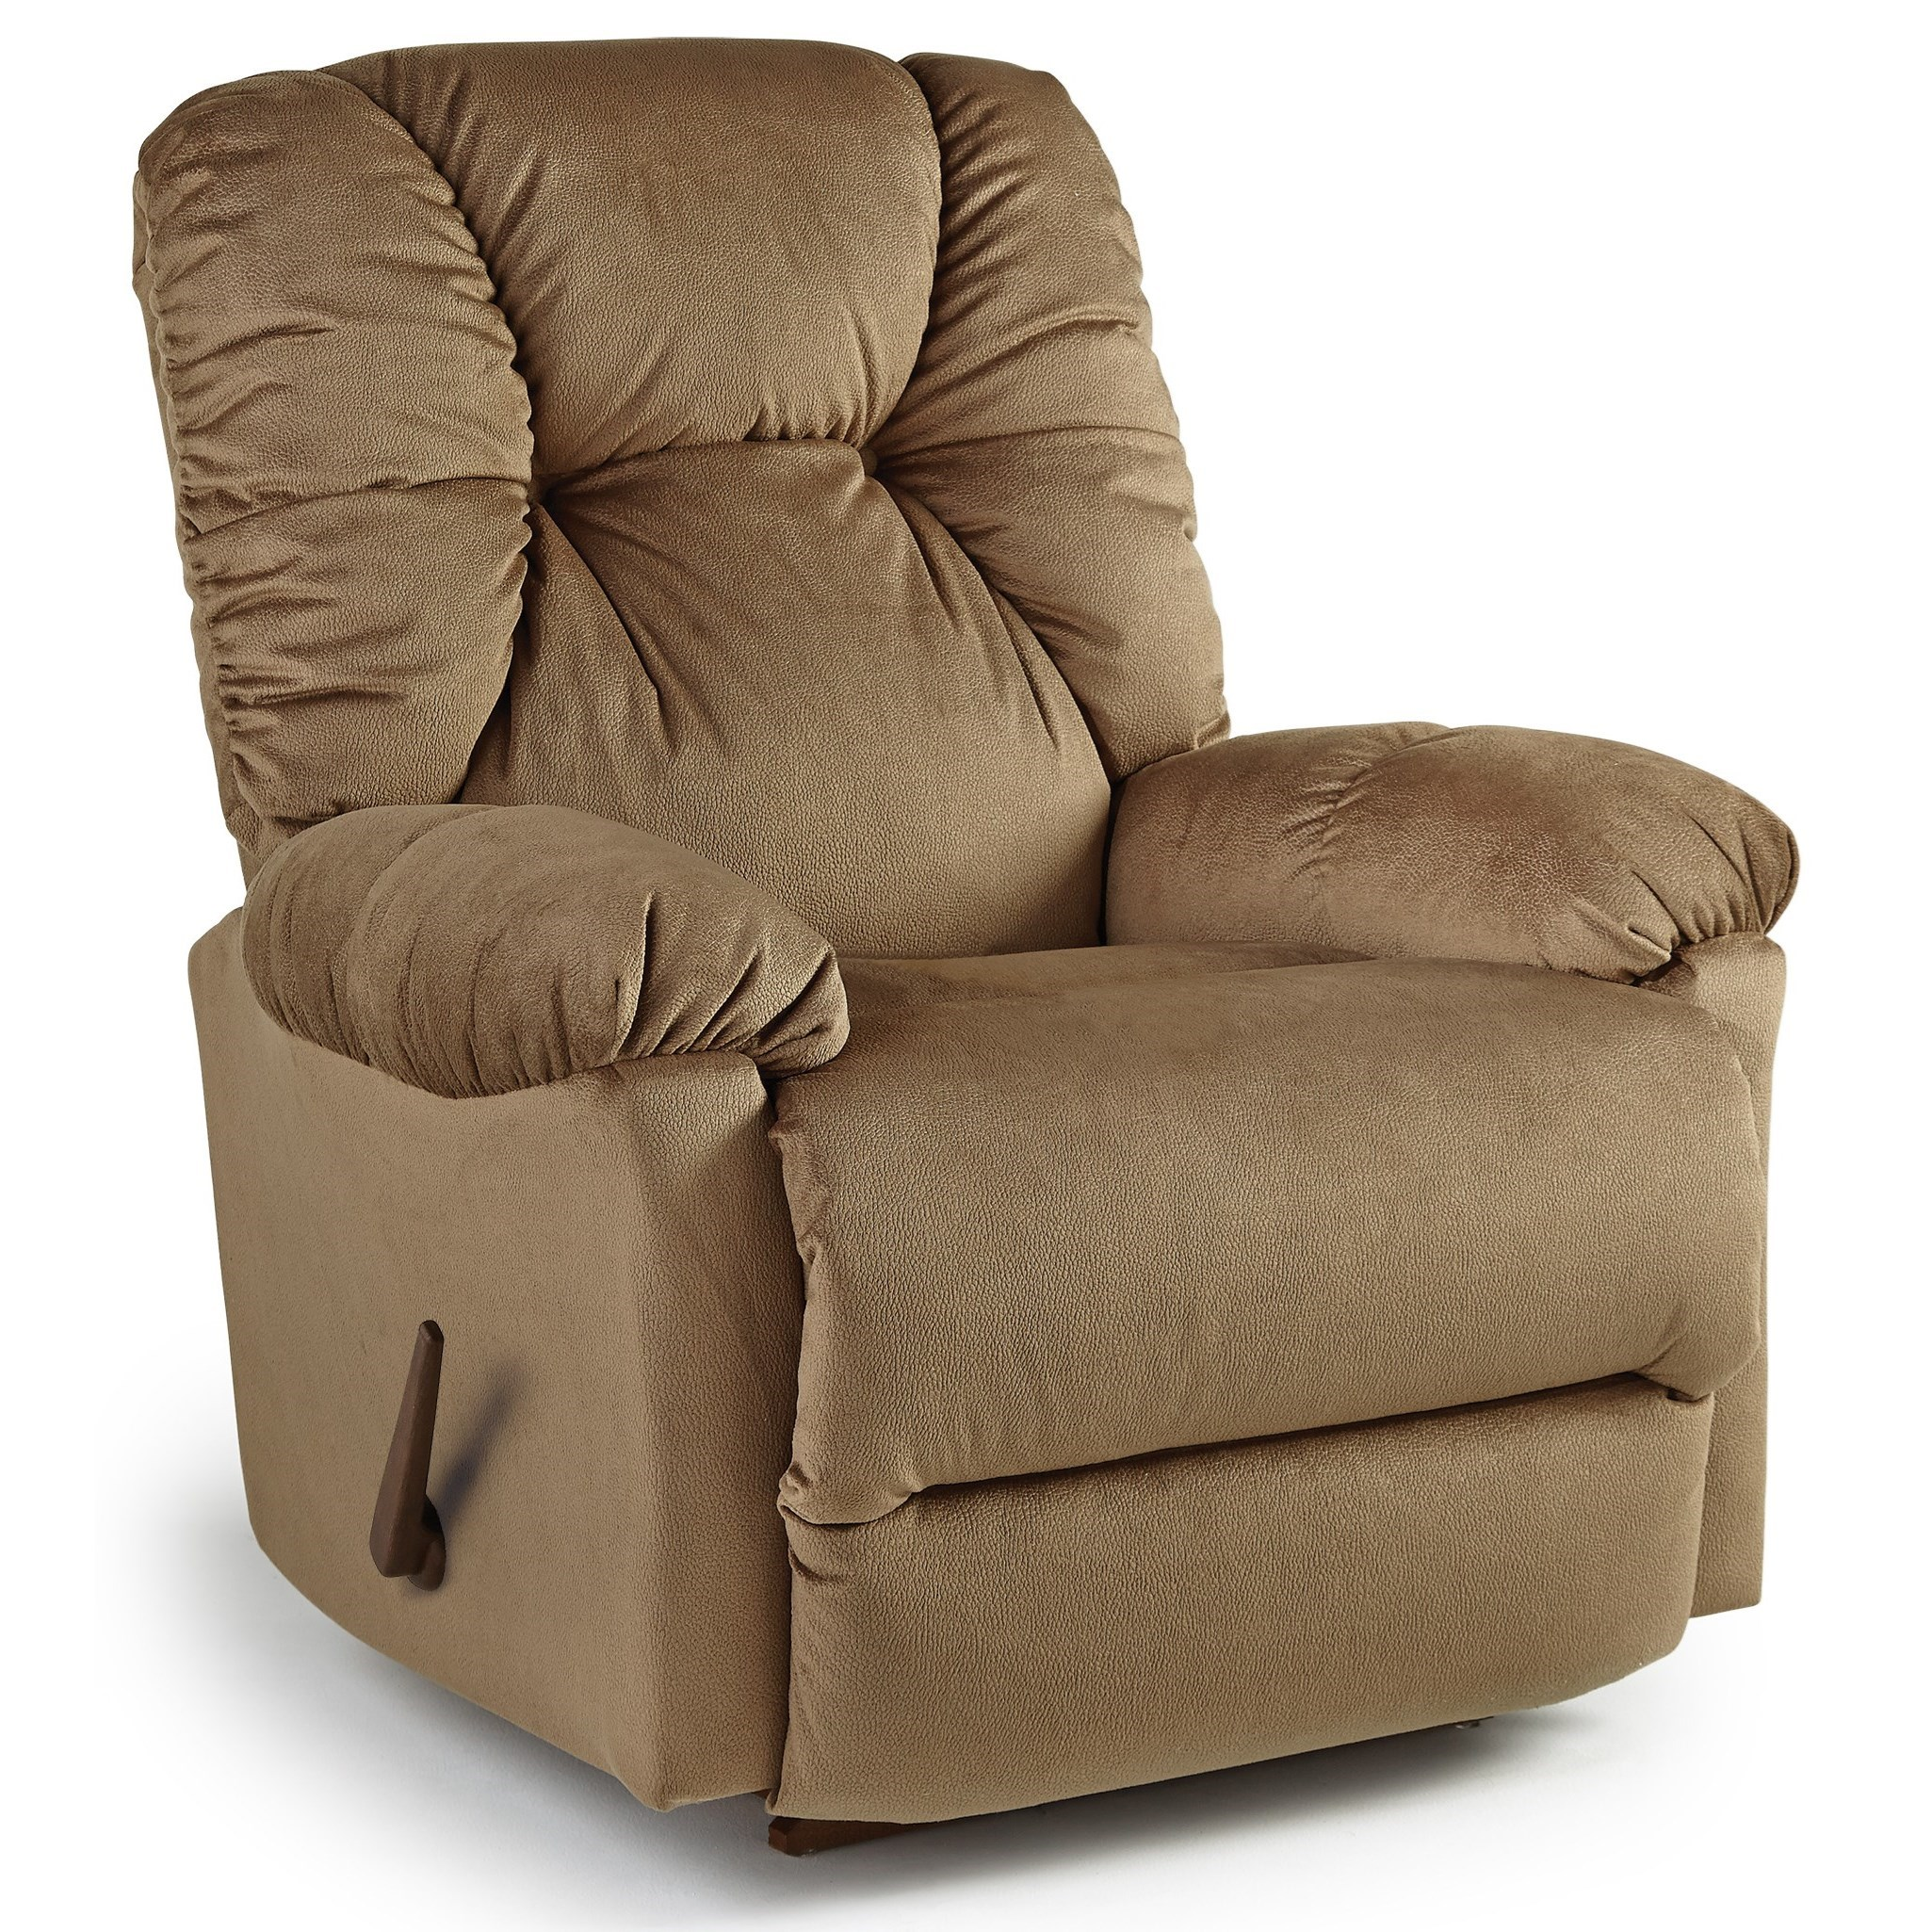 Medium Recliners Swivel Glider Recliner by Best Home Furnishings at Baer's Furniture